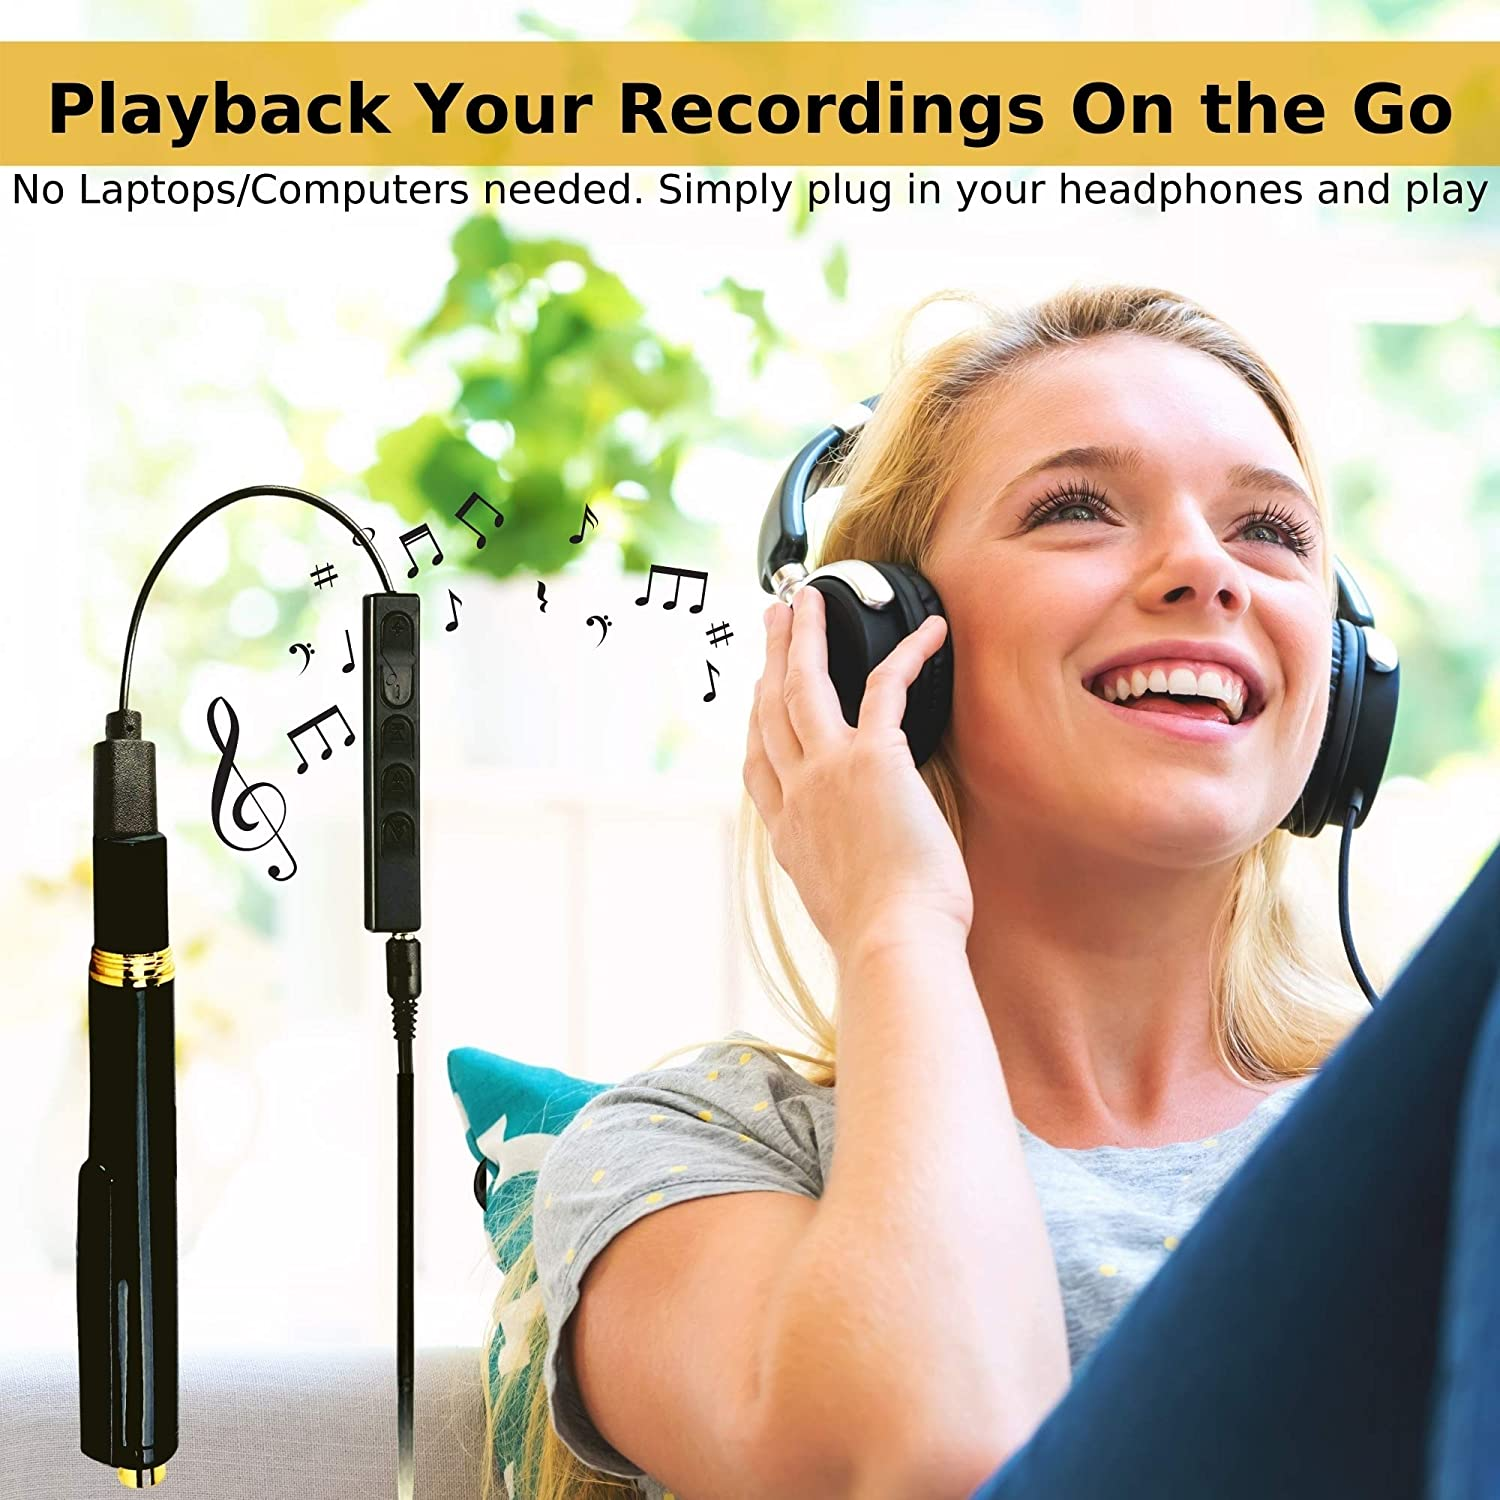 MP3 Player| Easy to Use Meetings Mini Recorder USB Tape Recorder for Lectures Voice Activated Recorder with Playback Audio Recorder interviews| Bonus Value Digital Voice Recorder 32GB